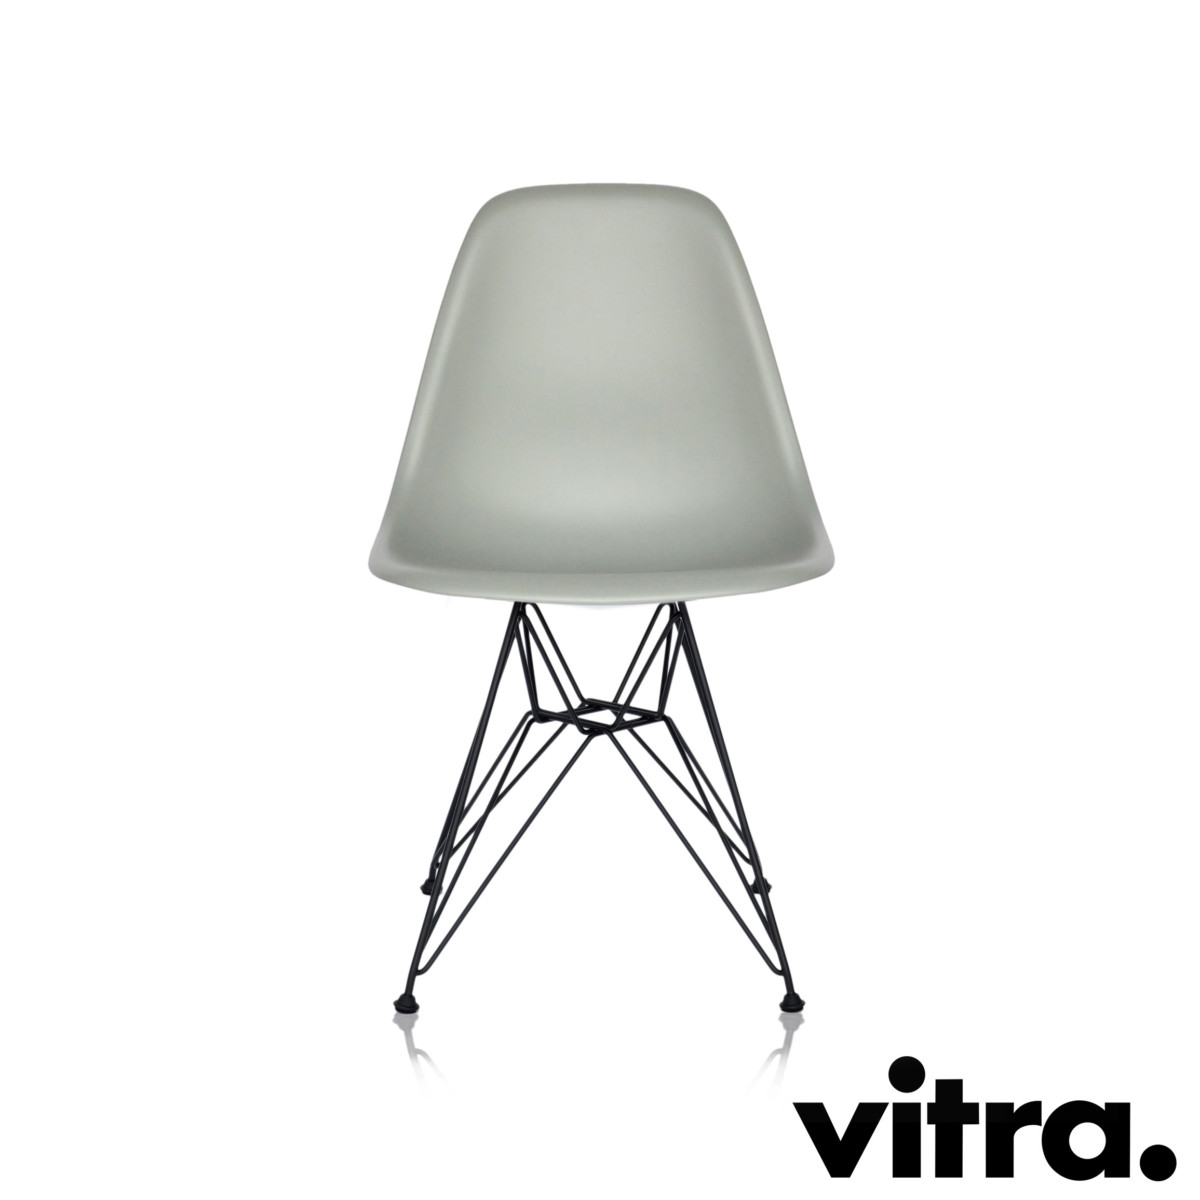 Vitra eames plastic side chair dsr kaufen for Vitra eames kopie